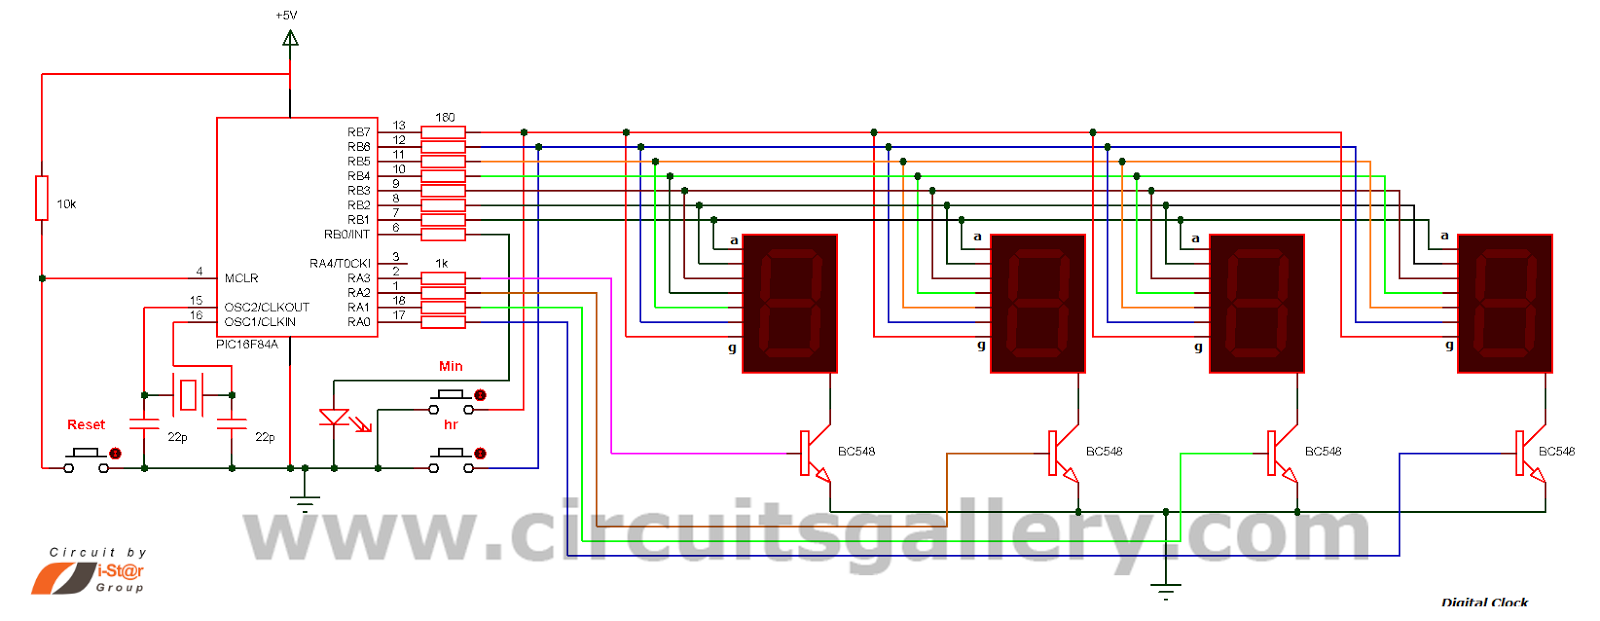 Real Time Clock Circuit Using Mircocontroller Pic16f84a Gallery Of Working Hybrid Cars Electronic Circuits And Diagramelectronics Projects Providing Lot Diy Diagrams